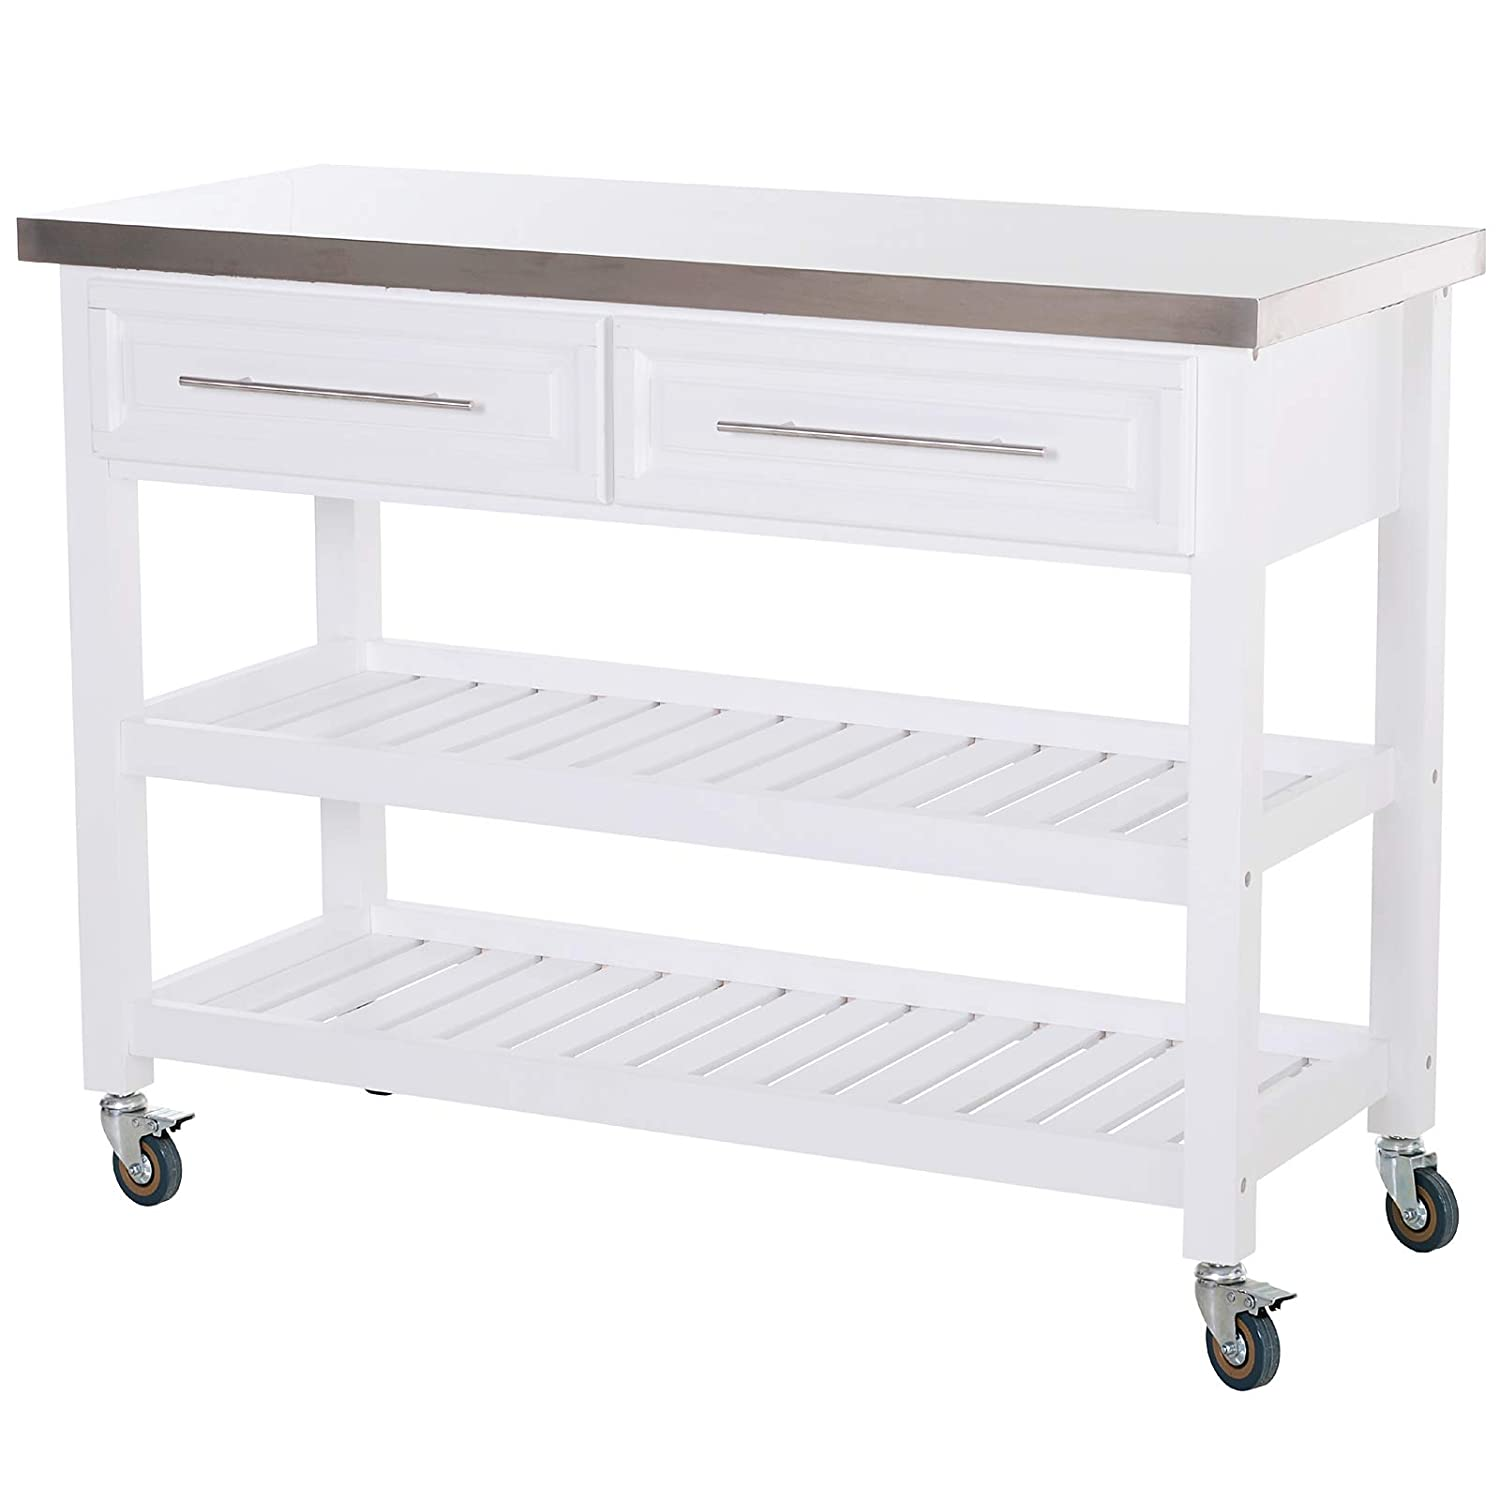 HOMCOM Rolling Kitchen Island Cart with Drawers, Shelves, and Stainless Steel Top – White